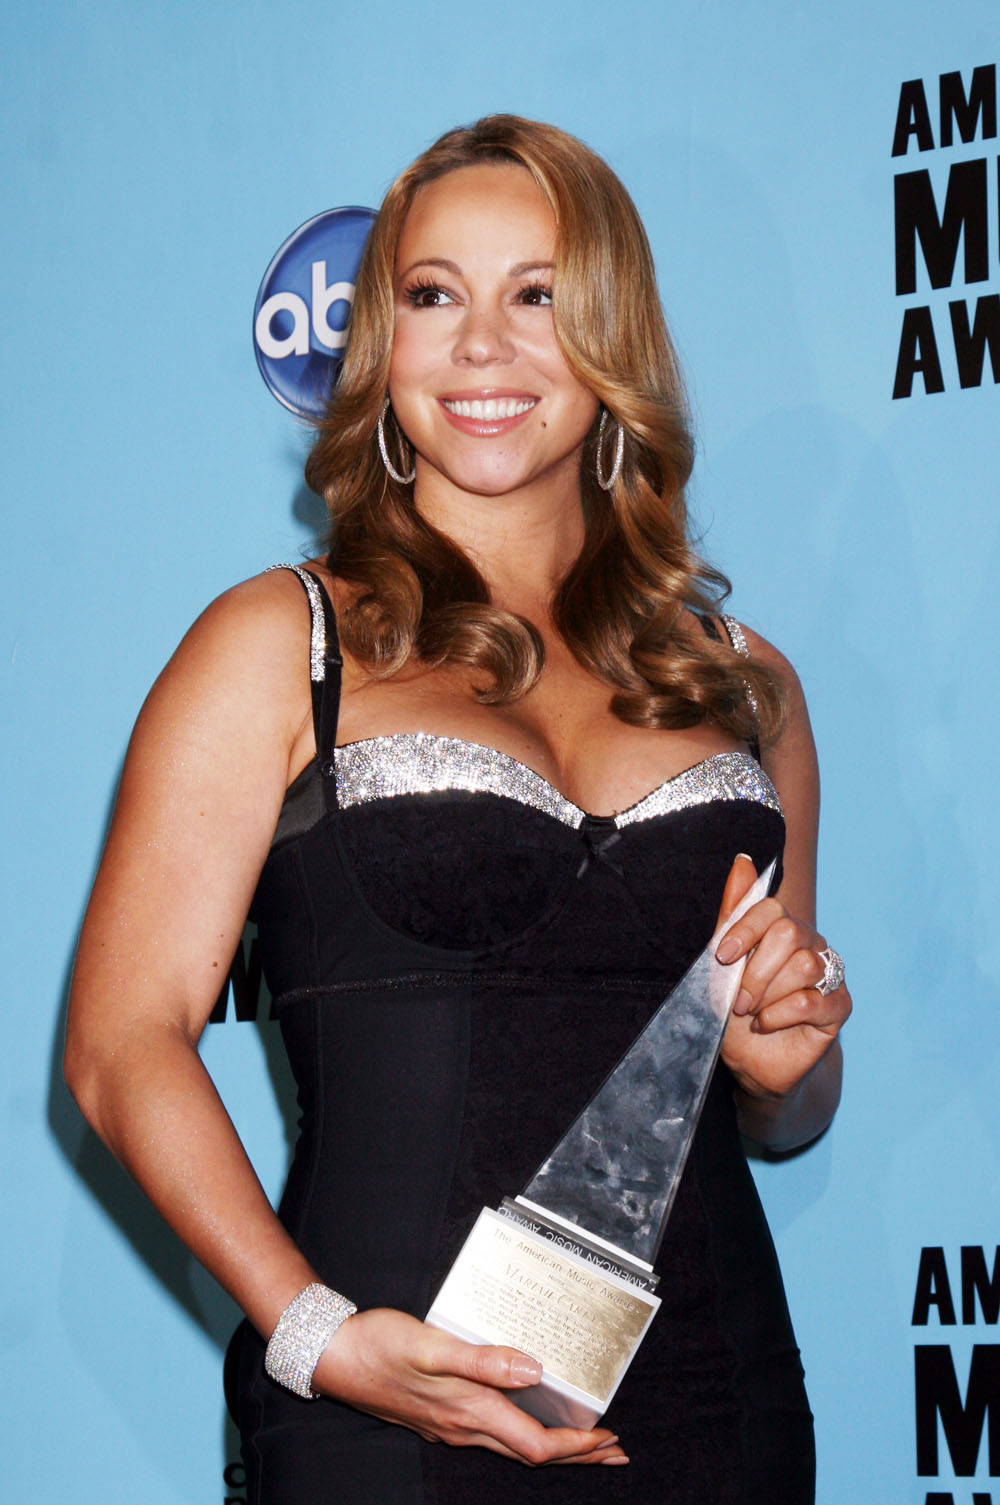 Mariah Carey pregnancy rumors kick into overdrive. Is she or isn't she?